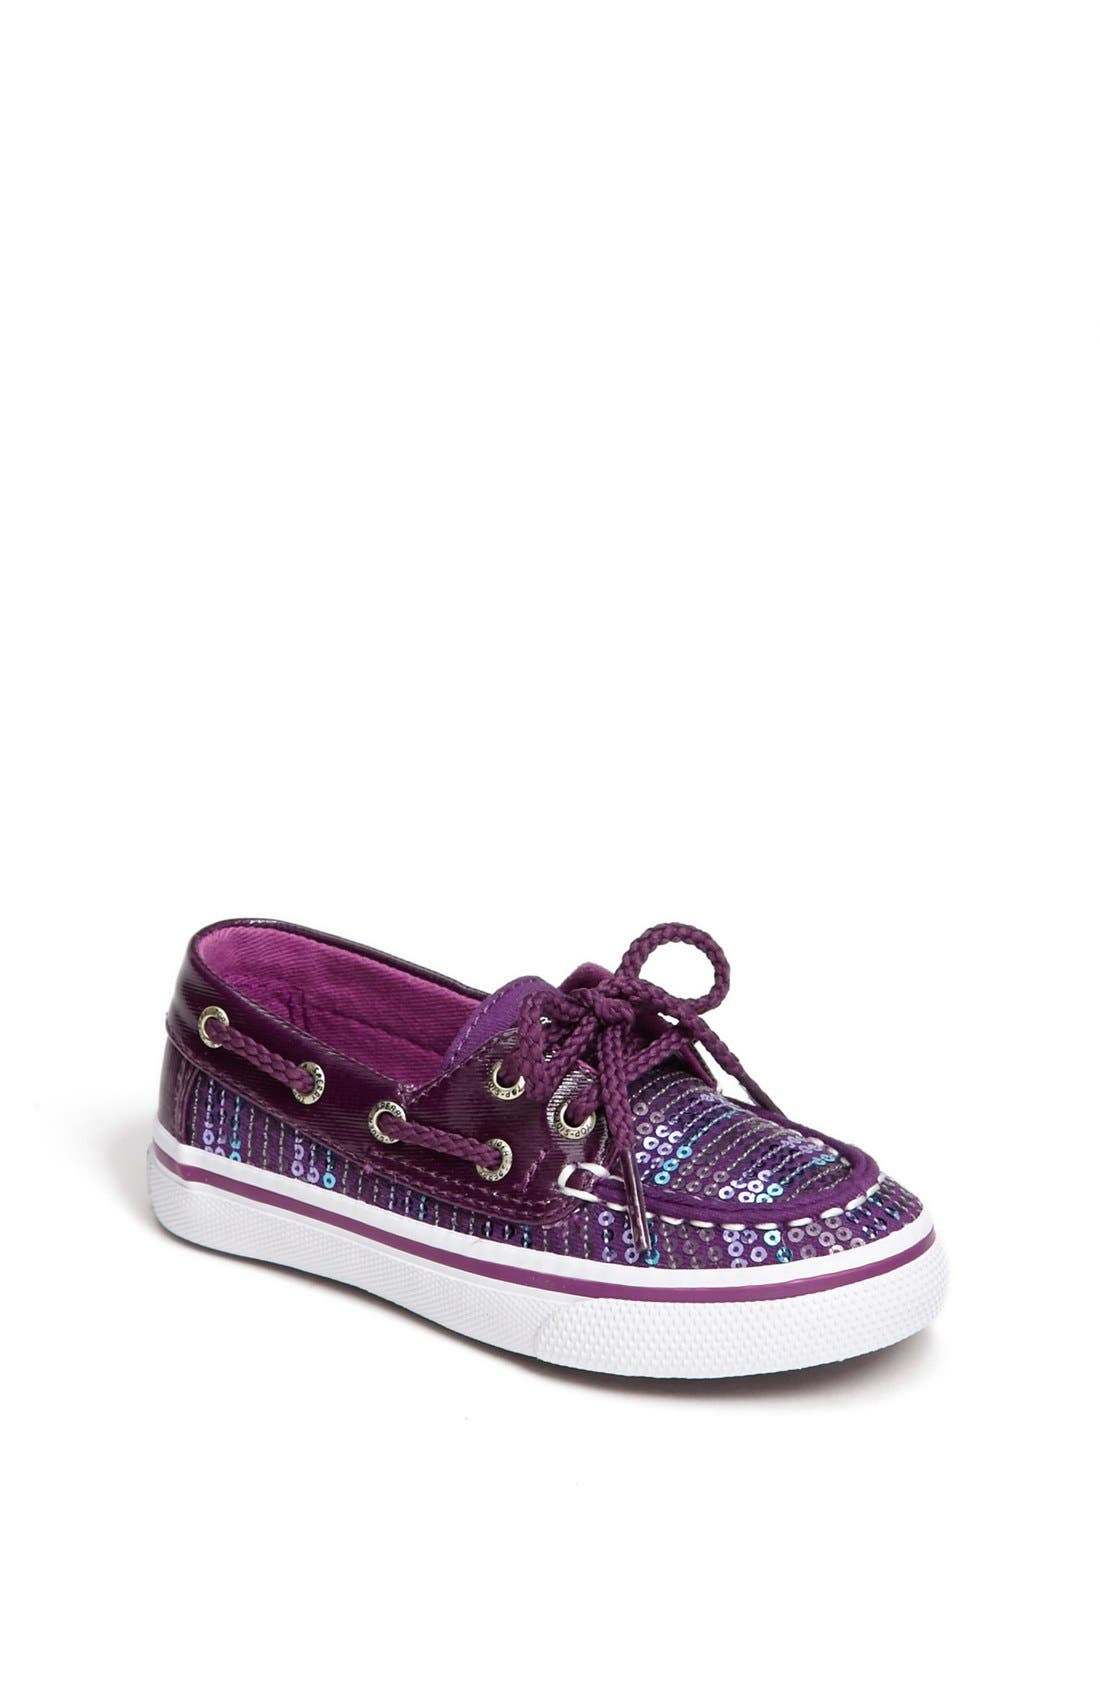 Alternate Image 1 Selected - Sperry Top-Sider® Kids 'Bahama' Slip-On (Walker, Toddler, Little Kid & Big Kid)